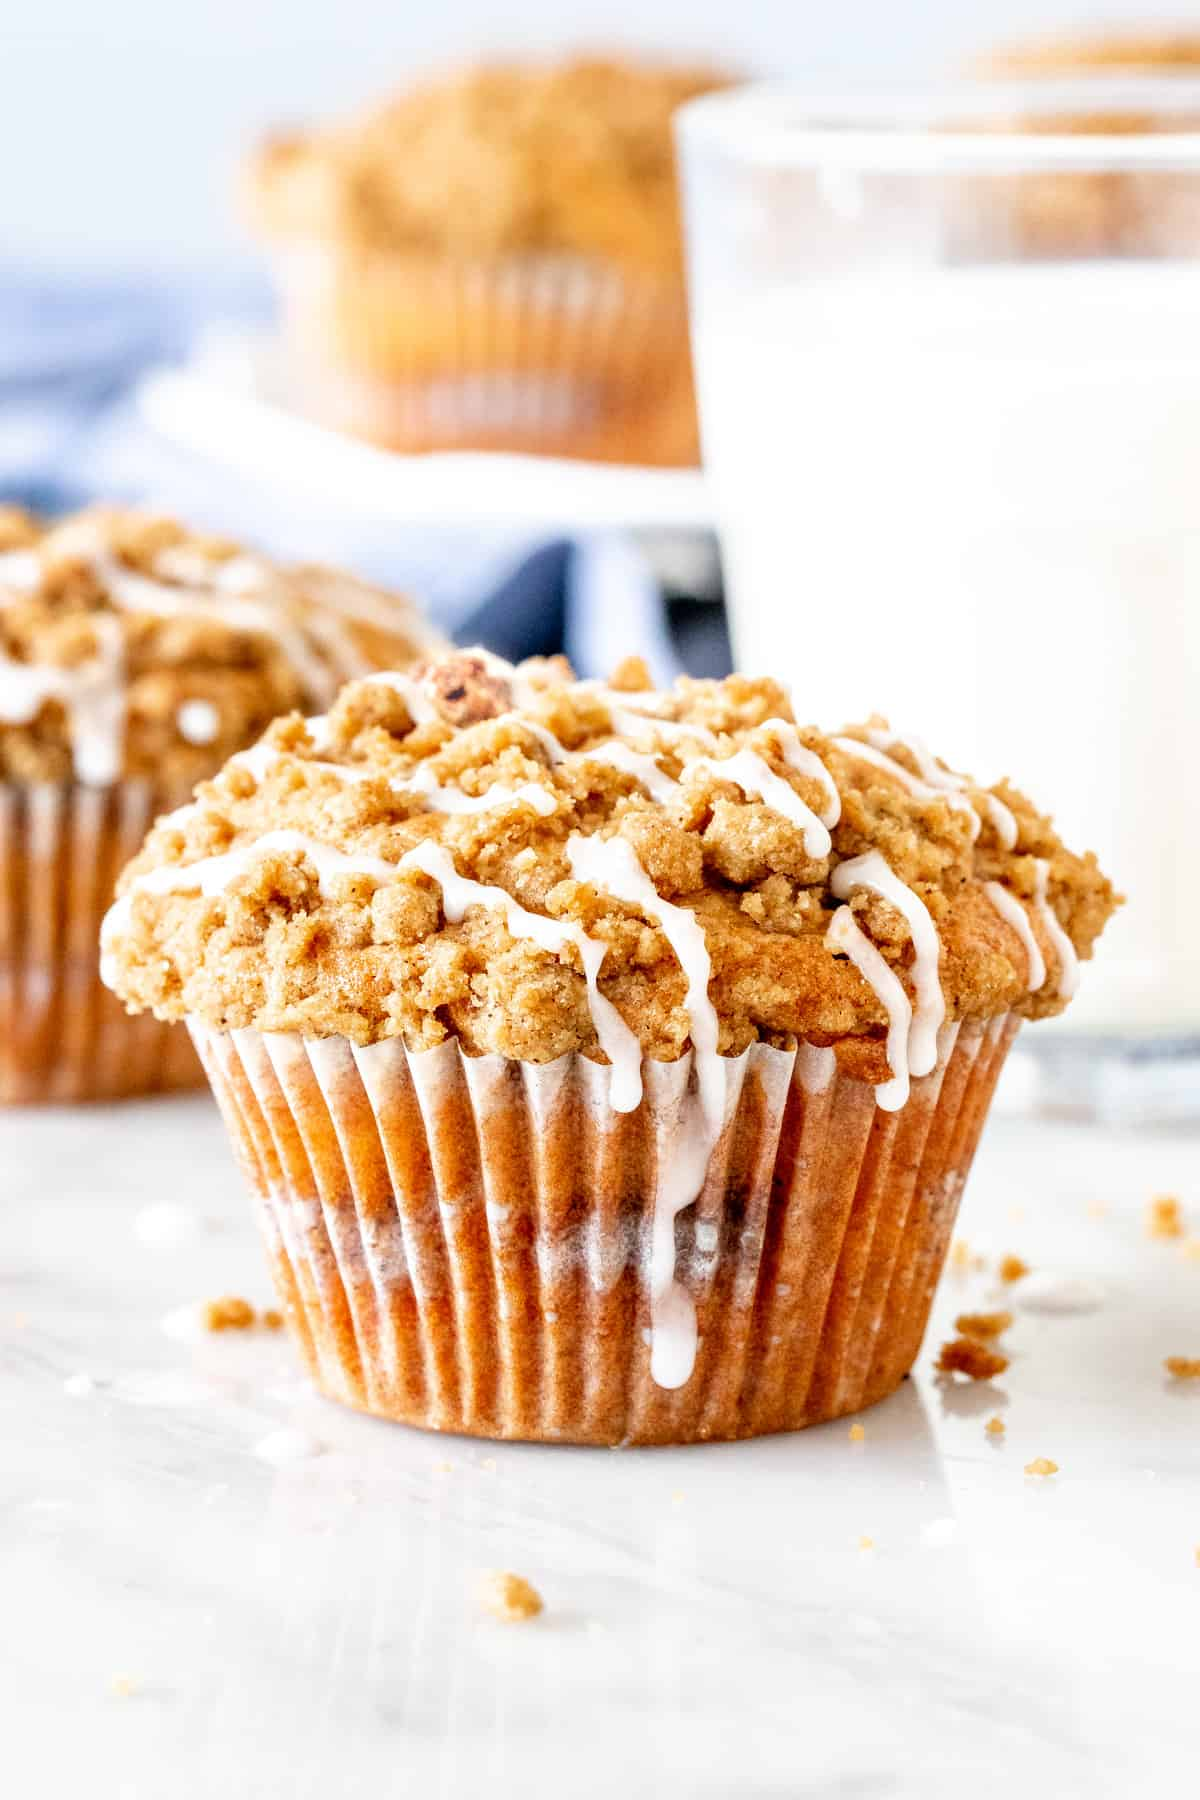 Coffee cake muffin with streusel on top and a drizzle of glaze.